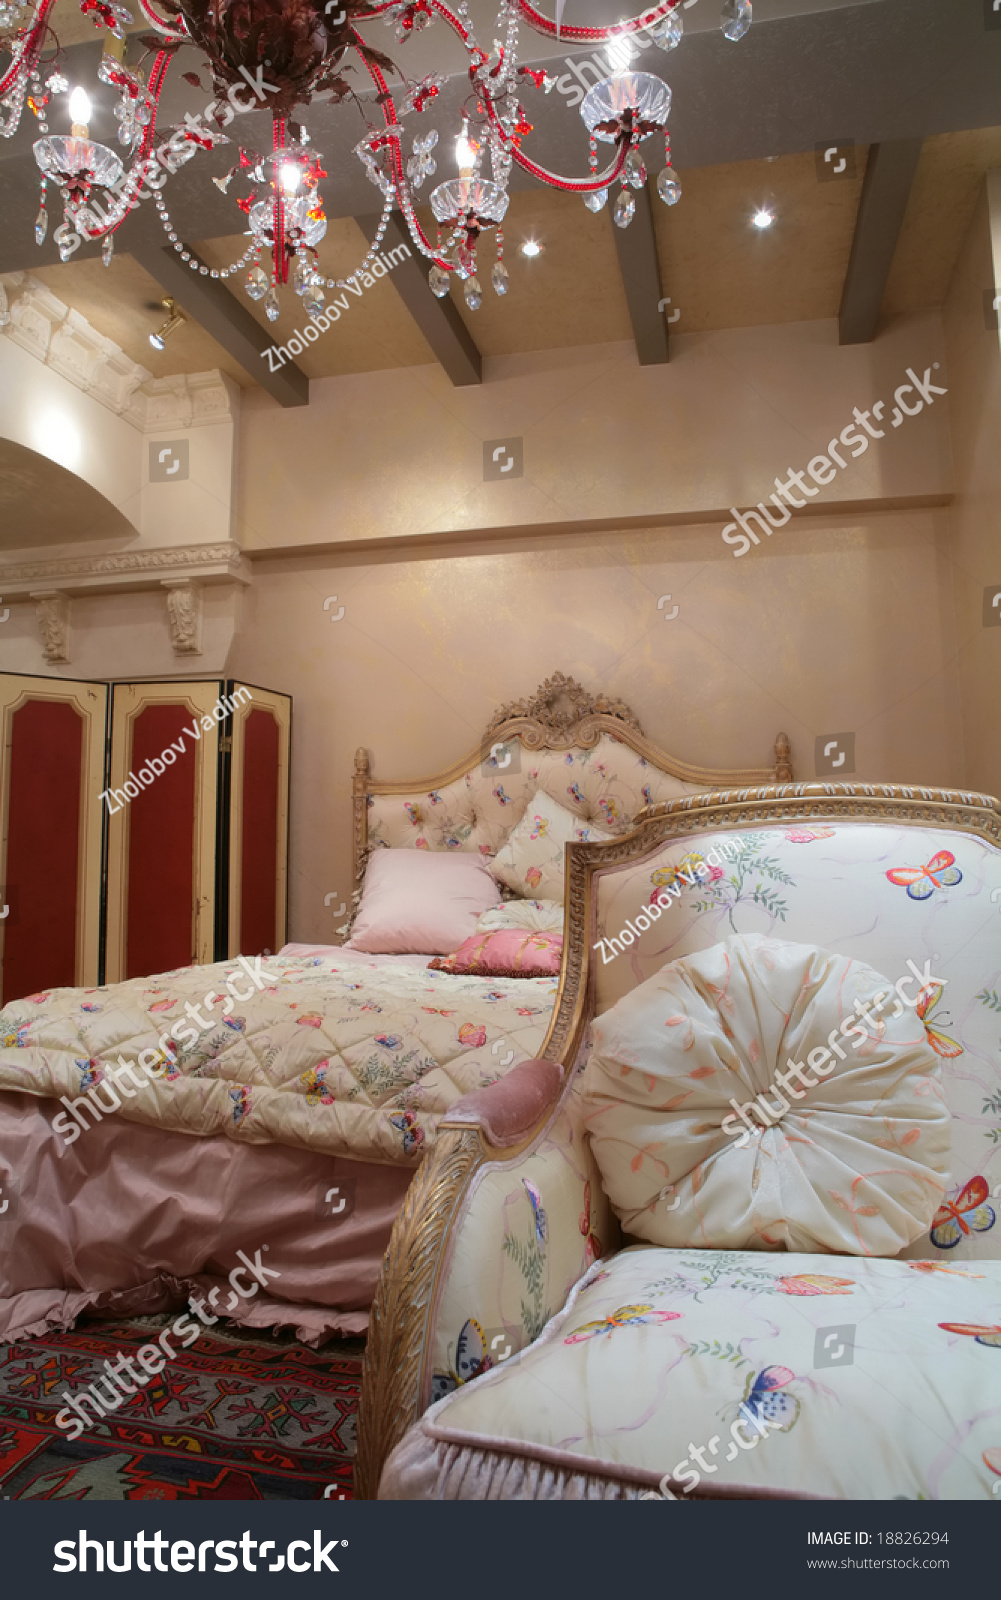 ... Retro Interior With Luxurious Bad Stock Photo 18826294 : Shutterstock